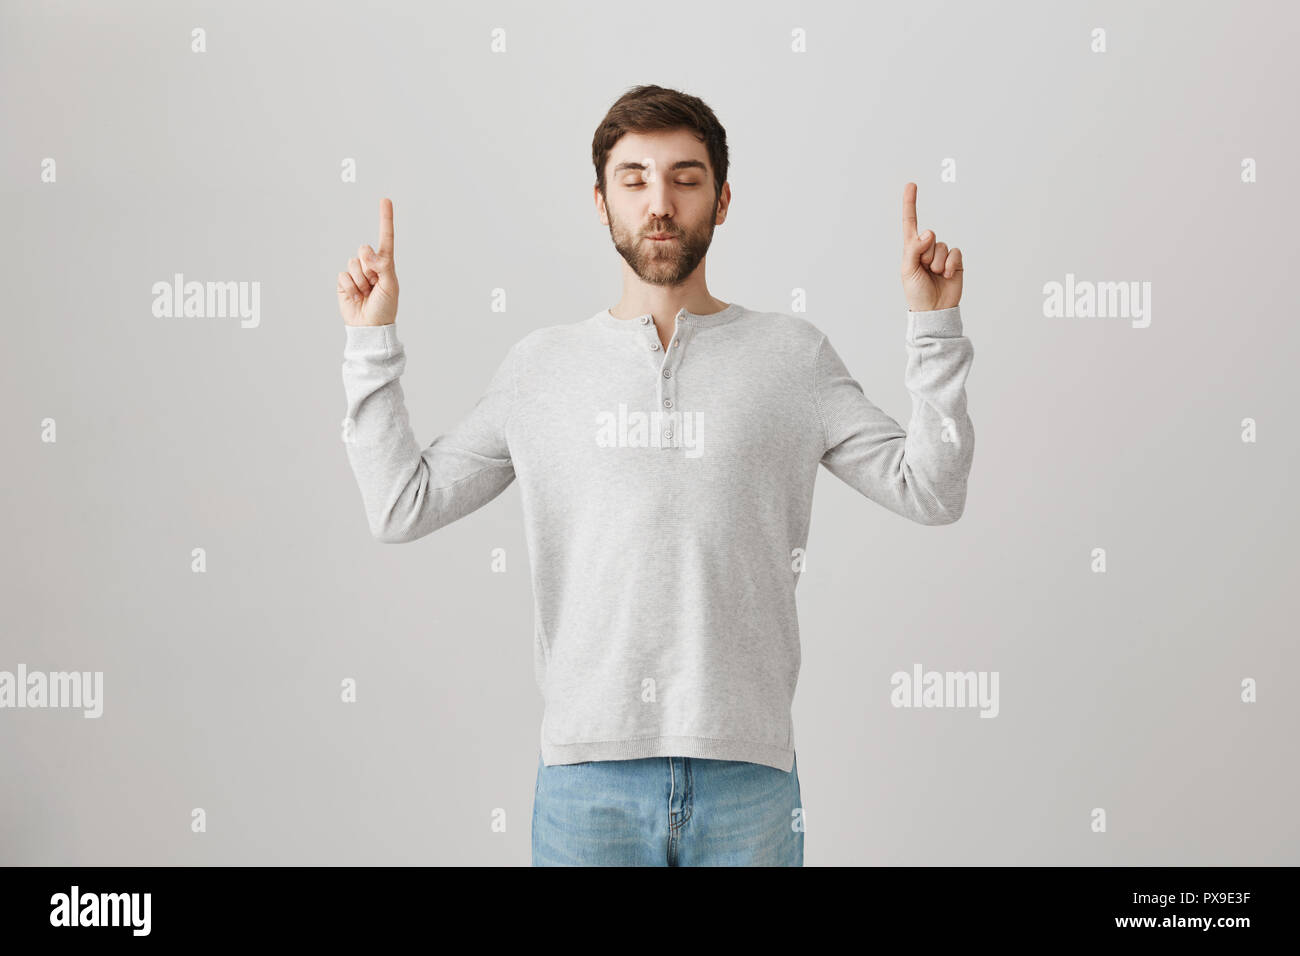 Attractive confident male with beard standing with closed eyes and sucked in lips, feeling narcissistic and calm, pointing up with index fingers. Guy is not surprised he won. Advertisement concept - Stock Image